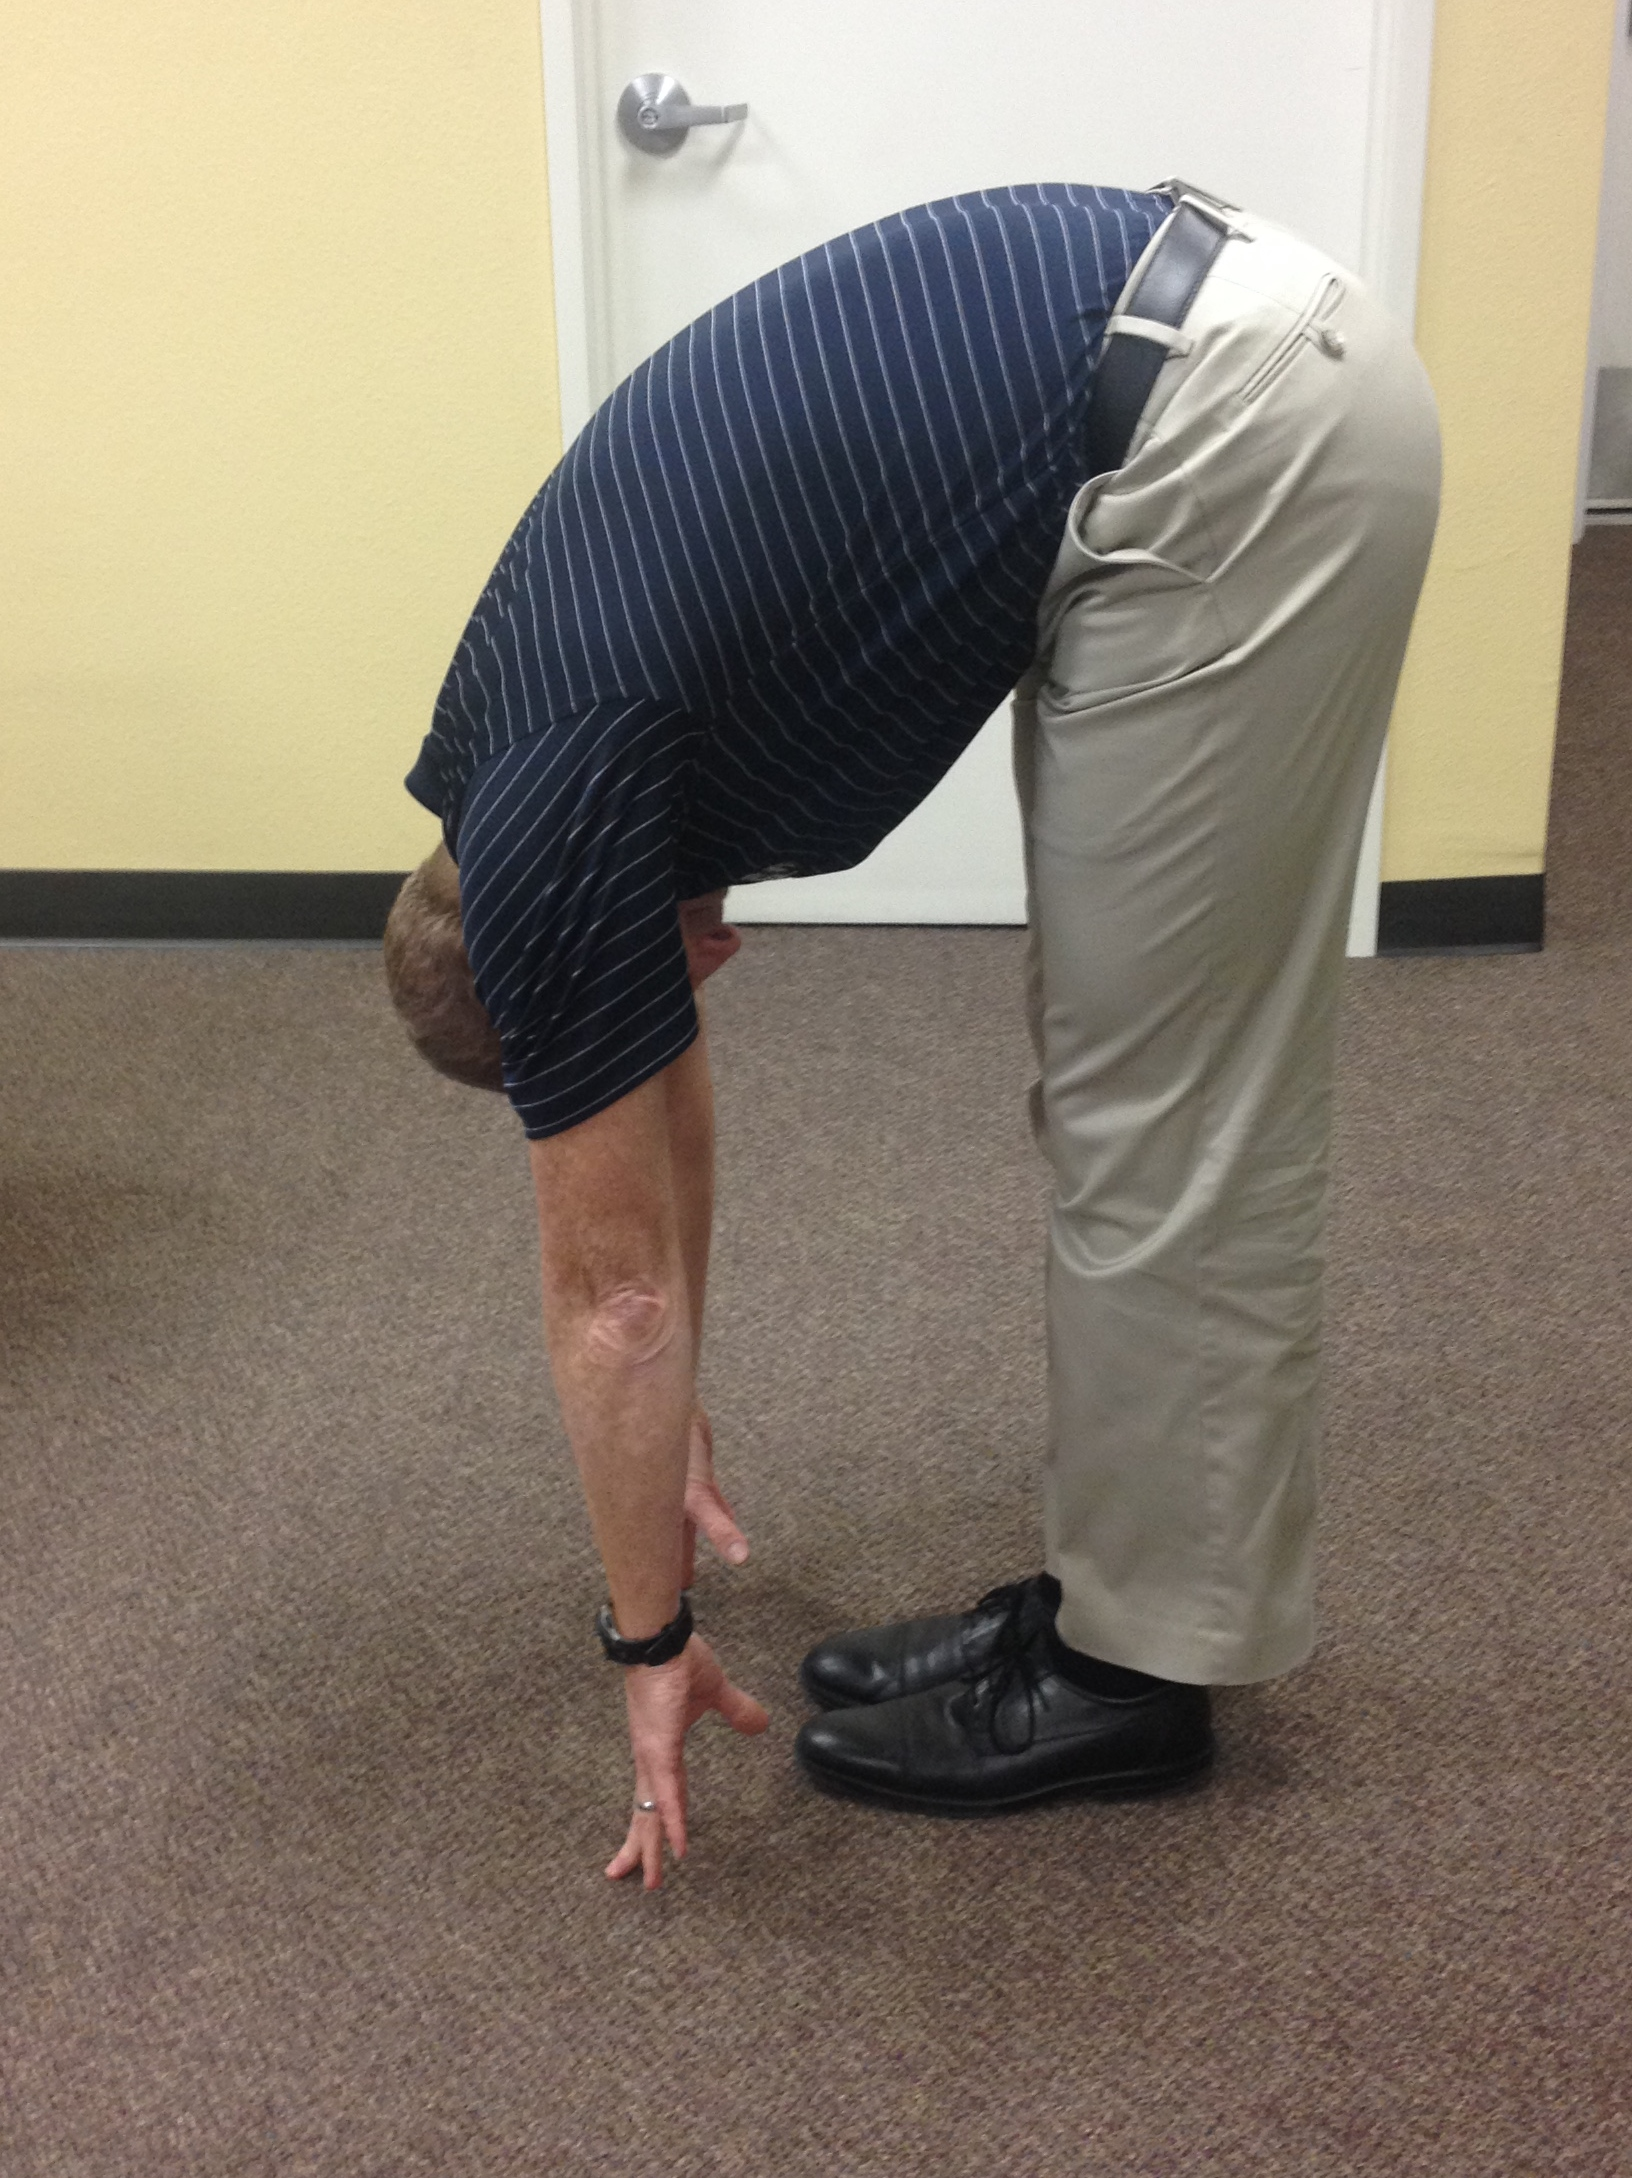 Flexion in Standing